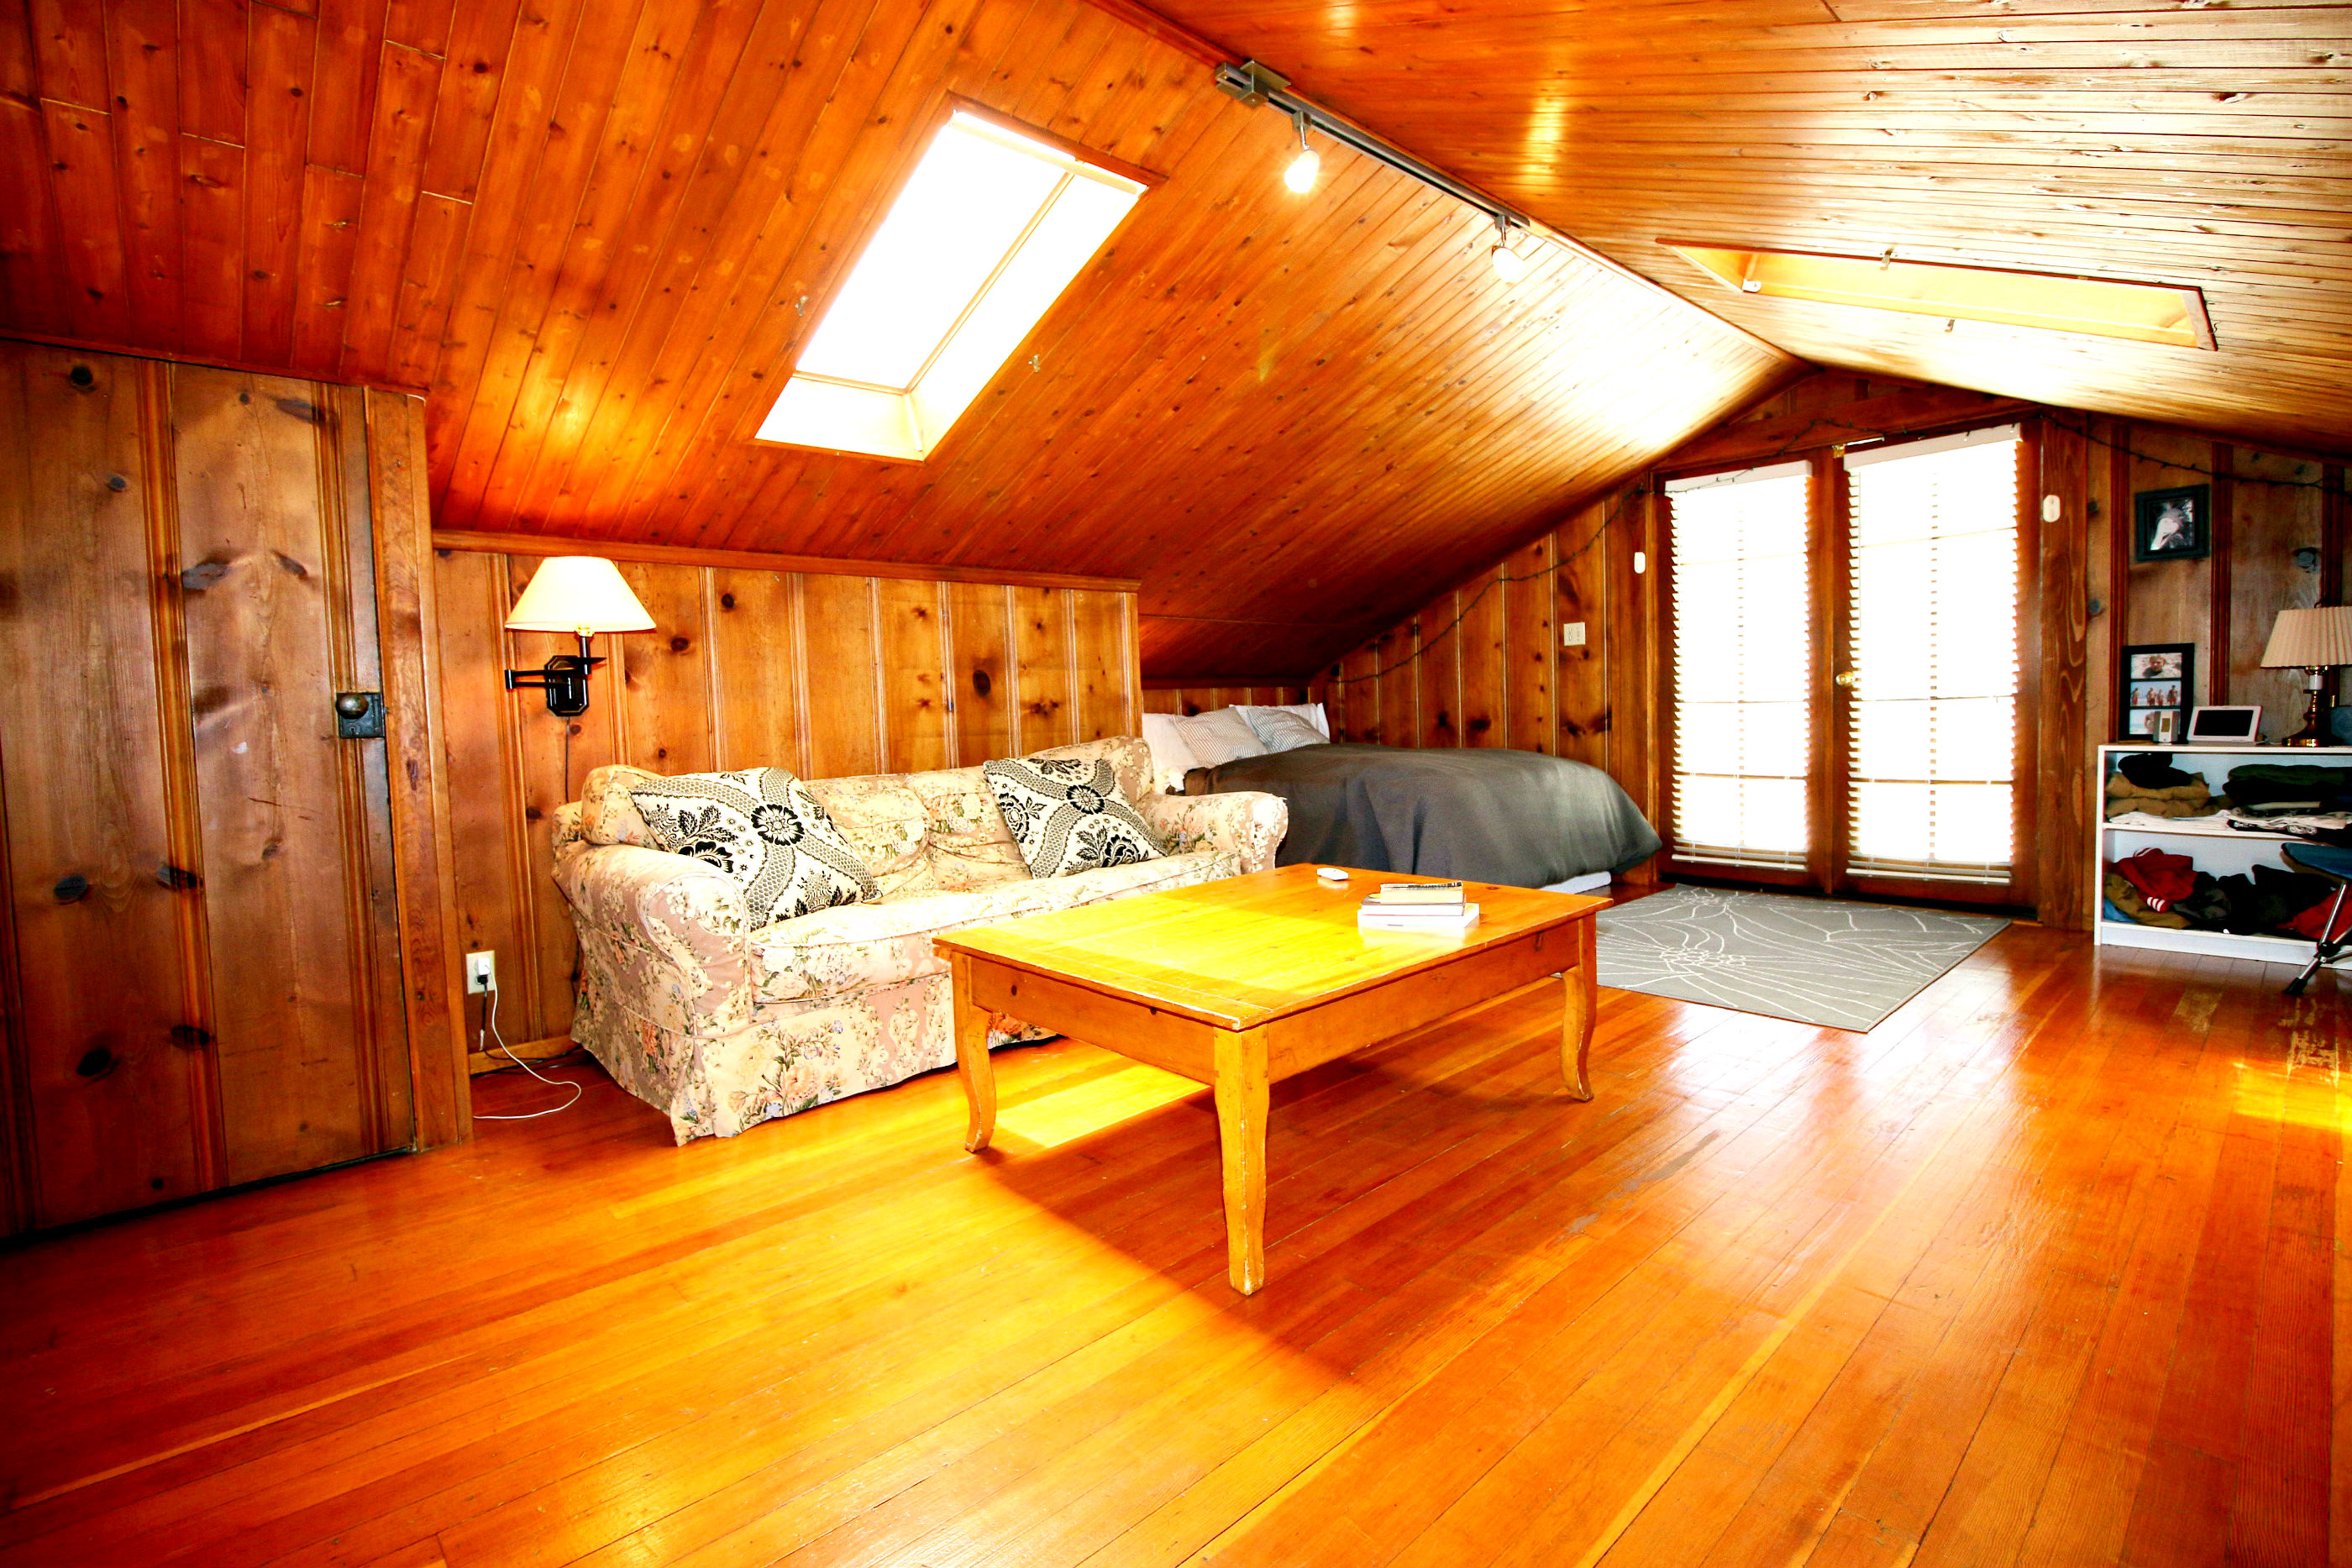 Alternate view of upstairs guest living room/bedroom with skylights and French doors leading to the private sun deck.